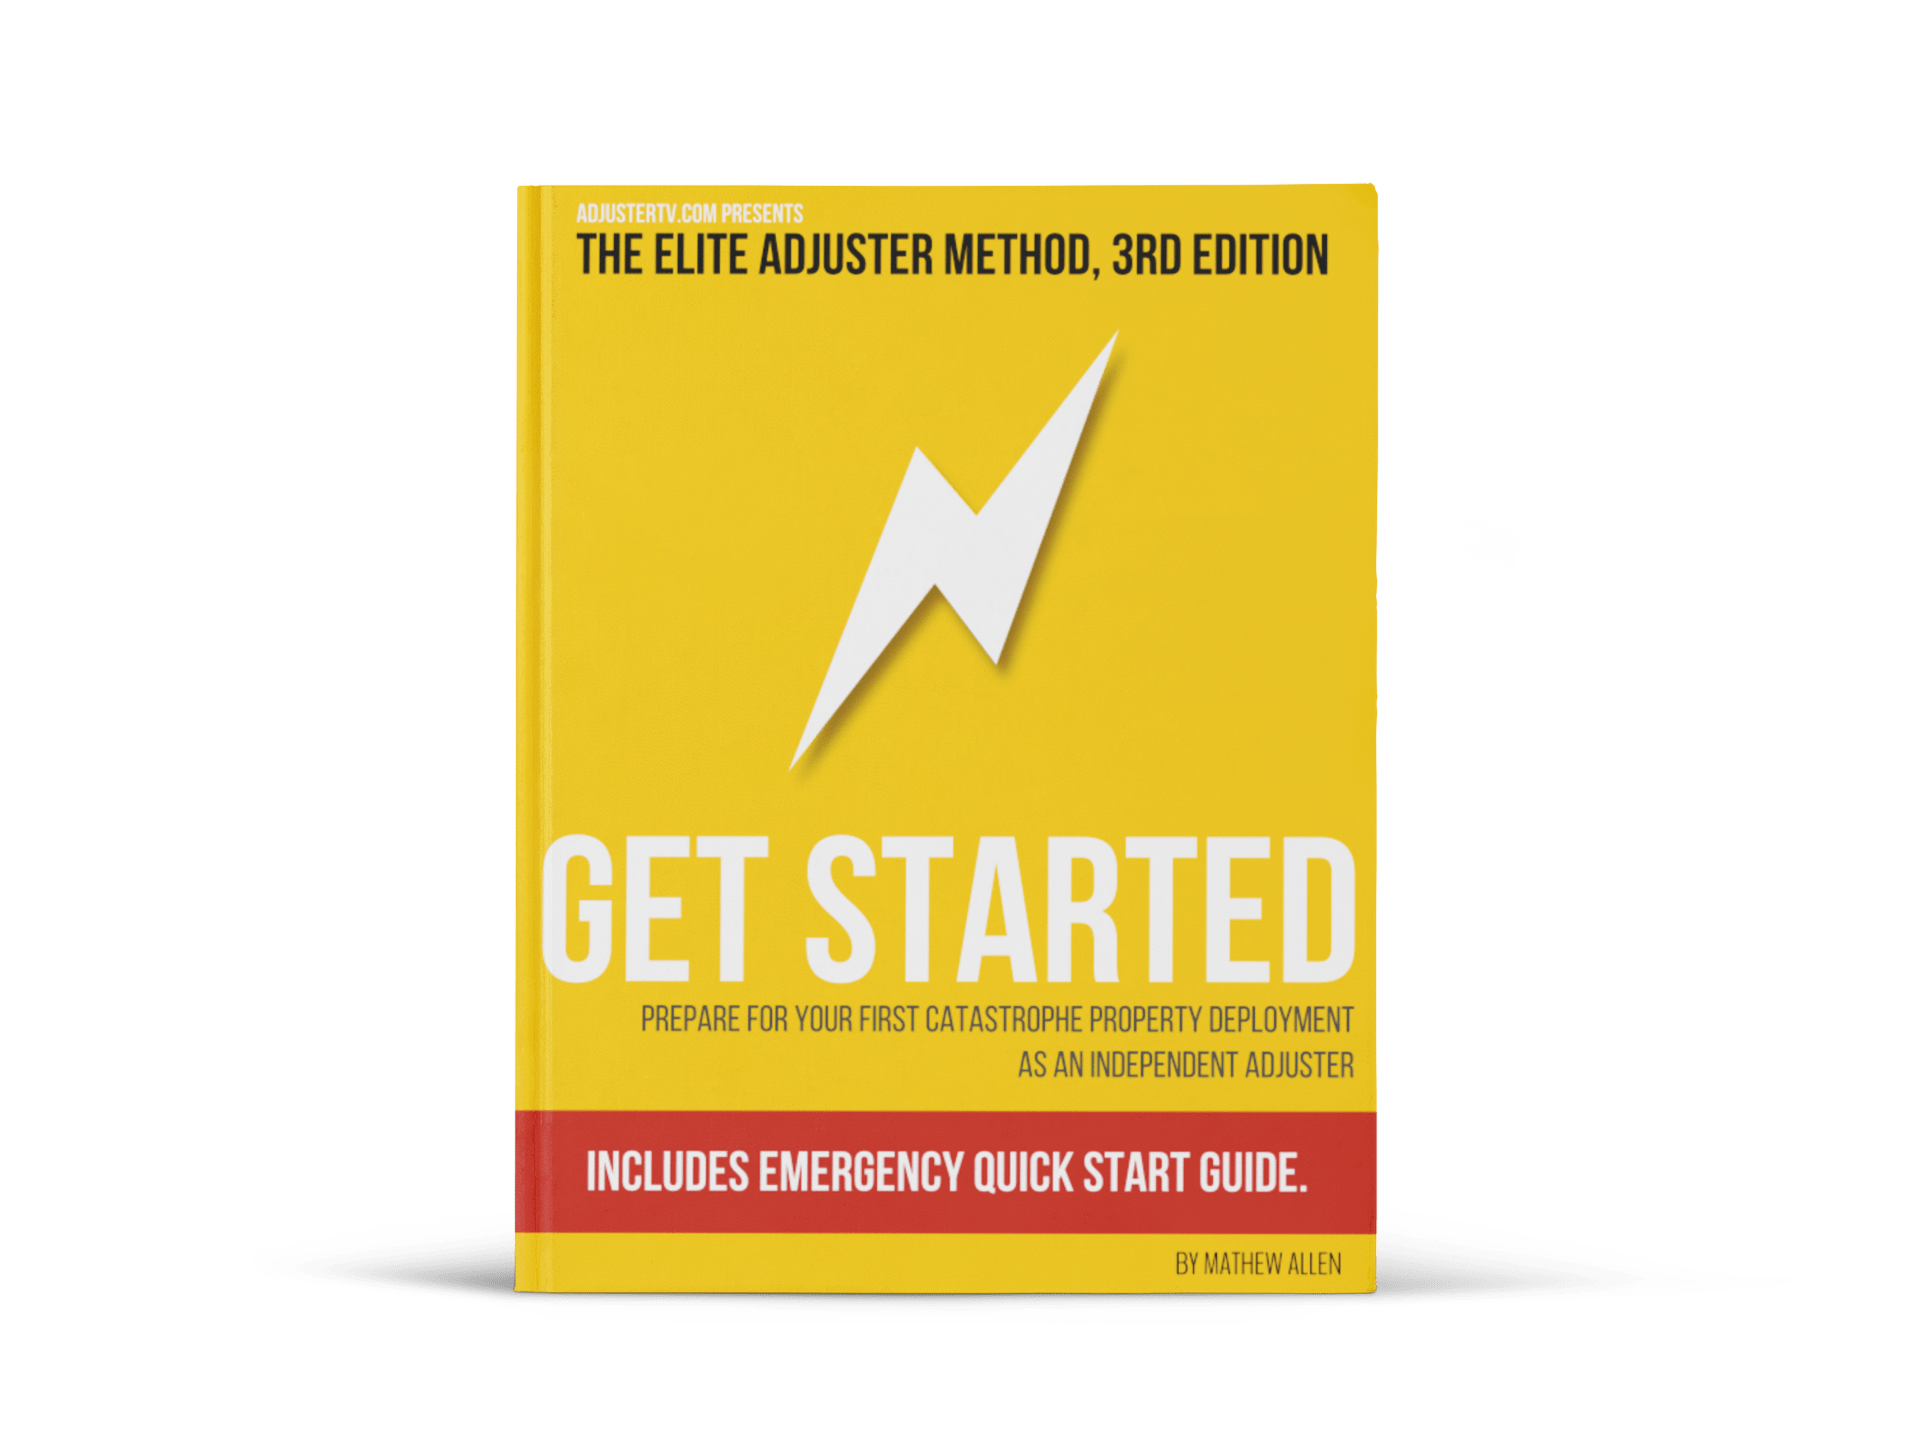 hardcover-ebook-mockup-standing-over-a-flat-surface-a9869-min.png